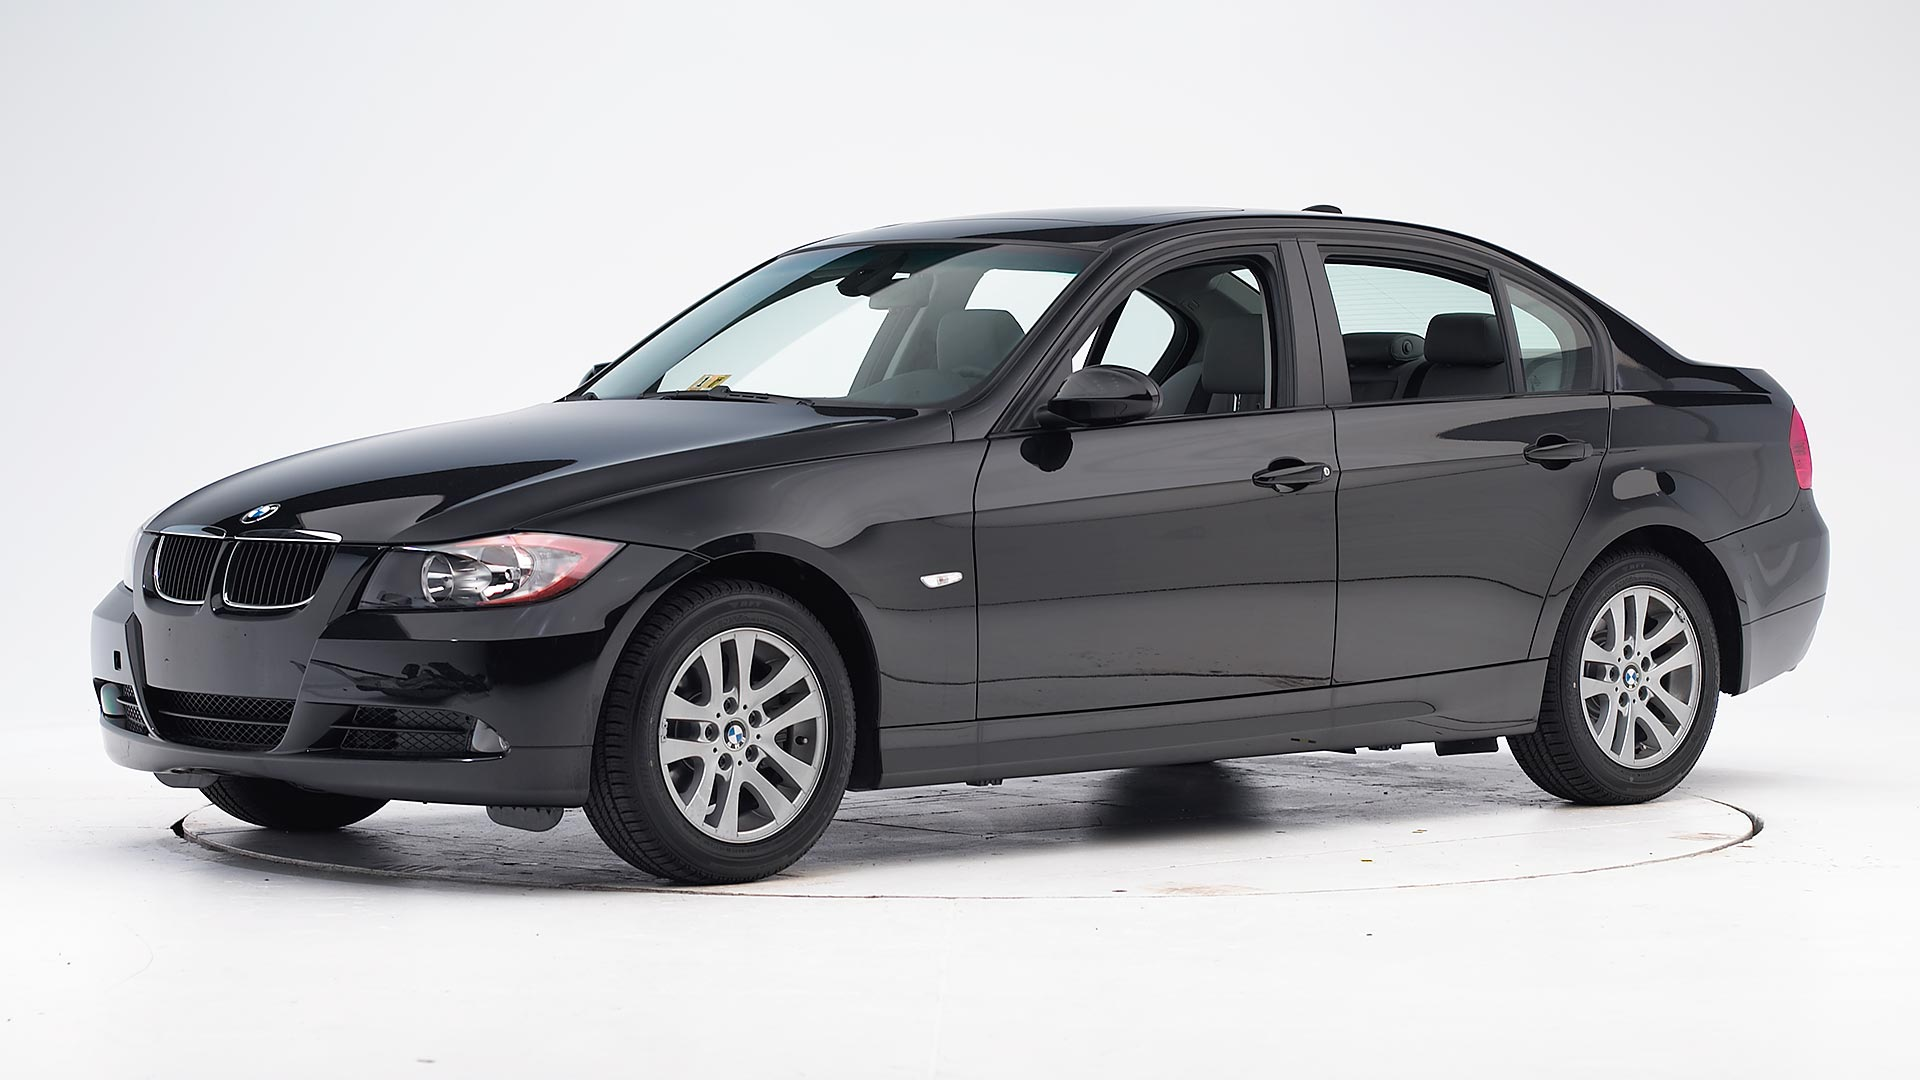 2006 BMW 3 series 4-door sedan